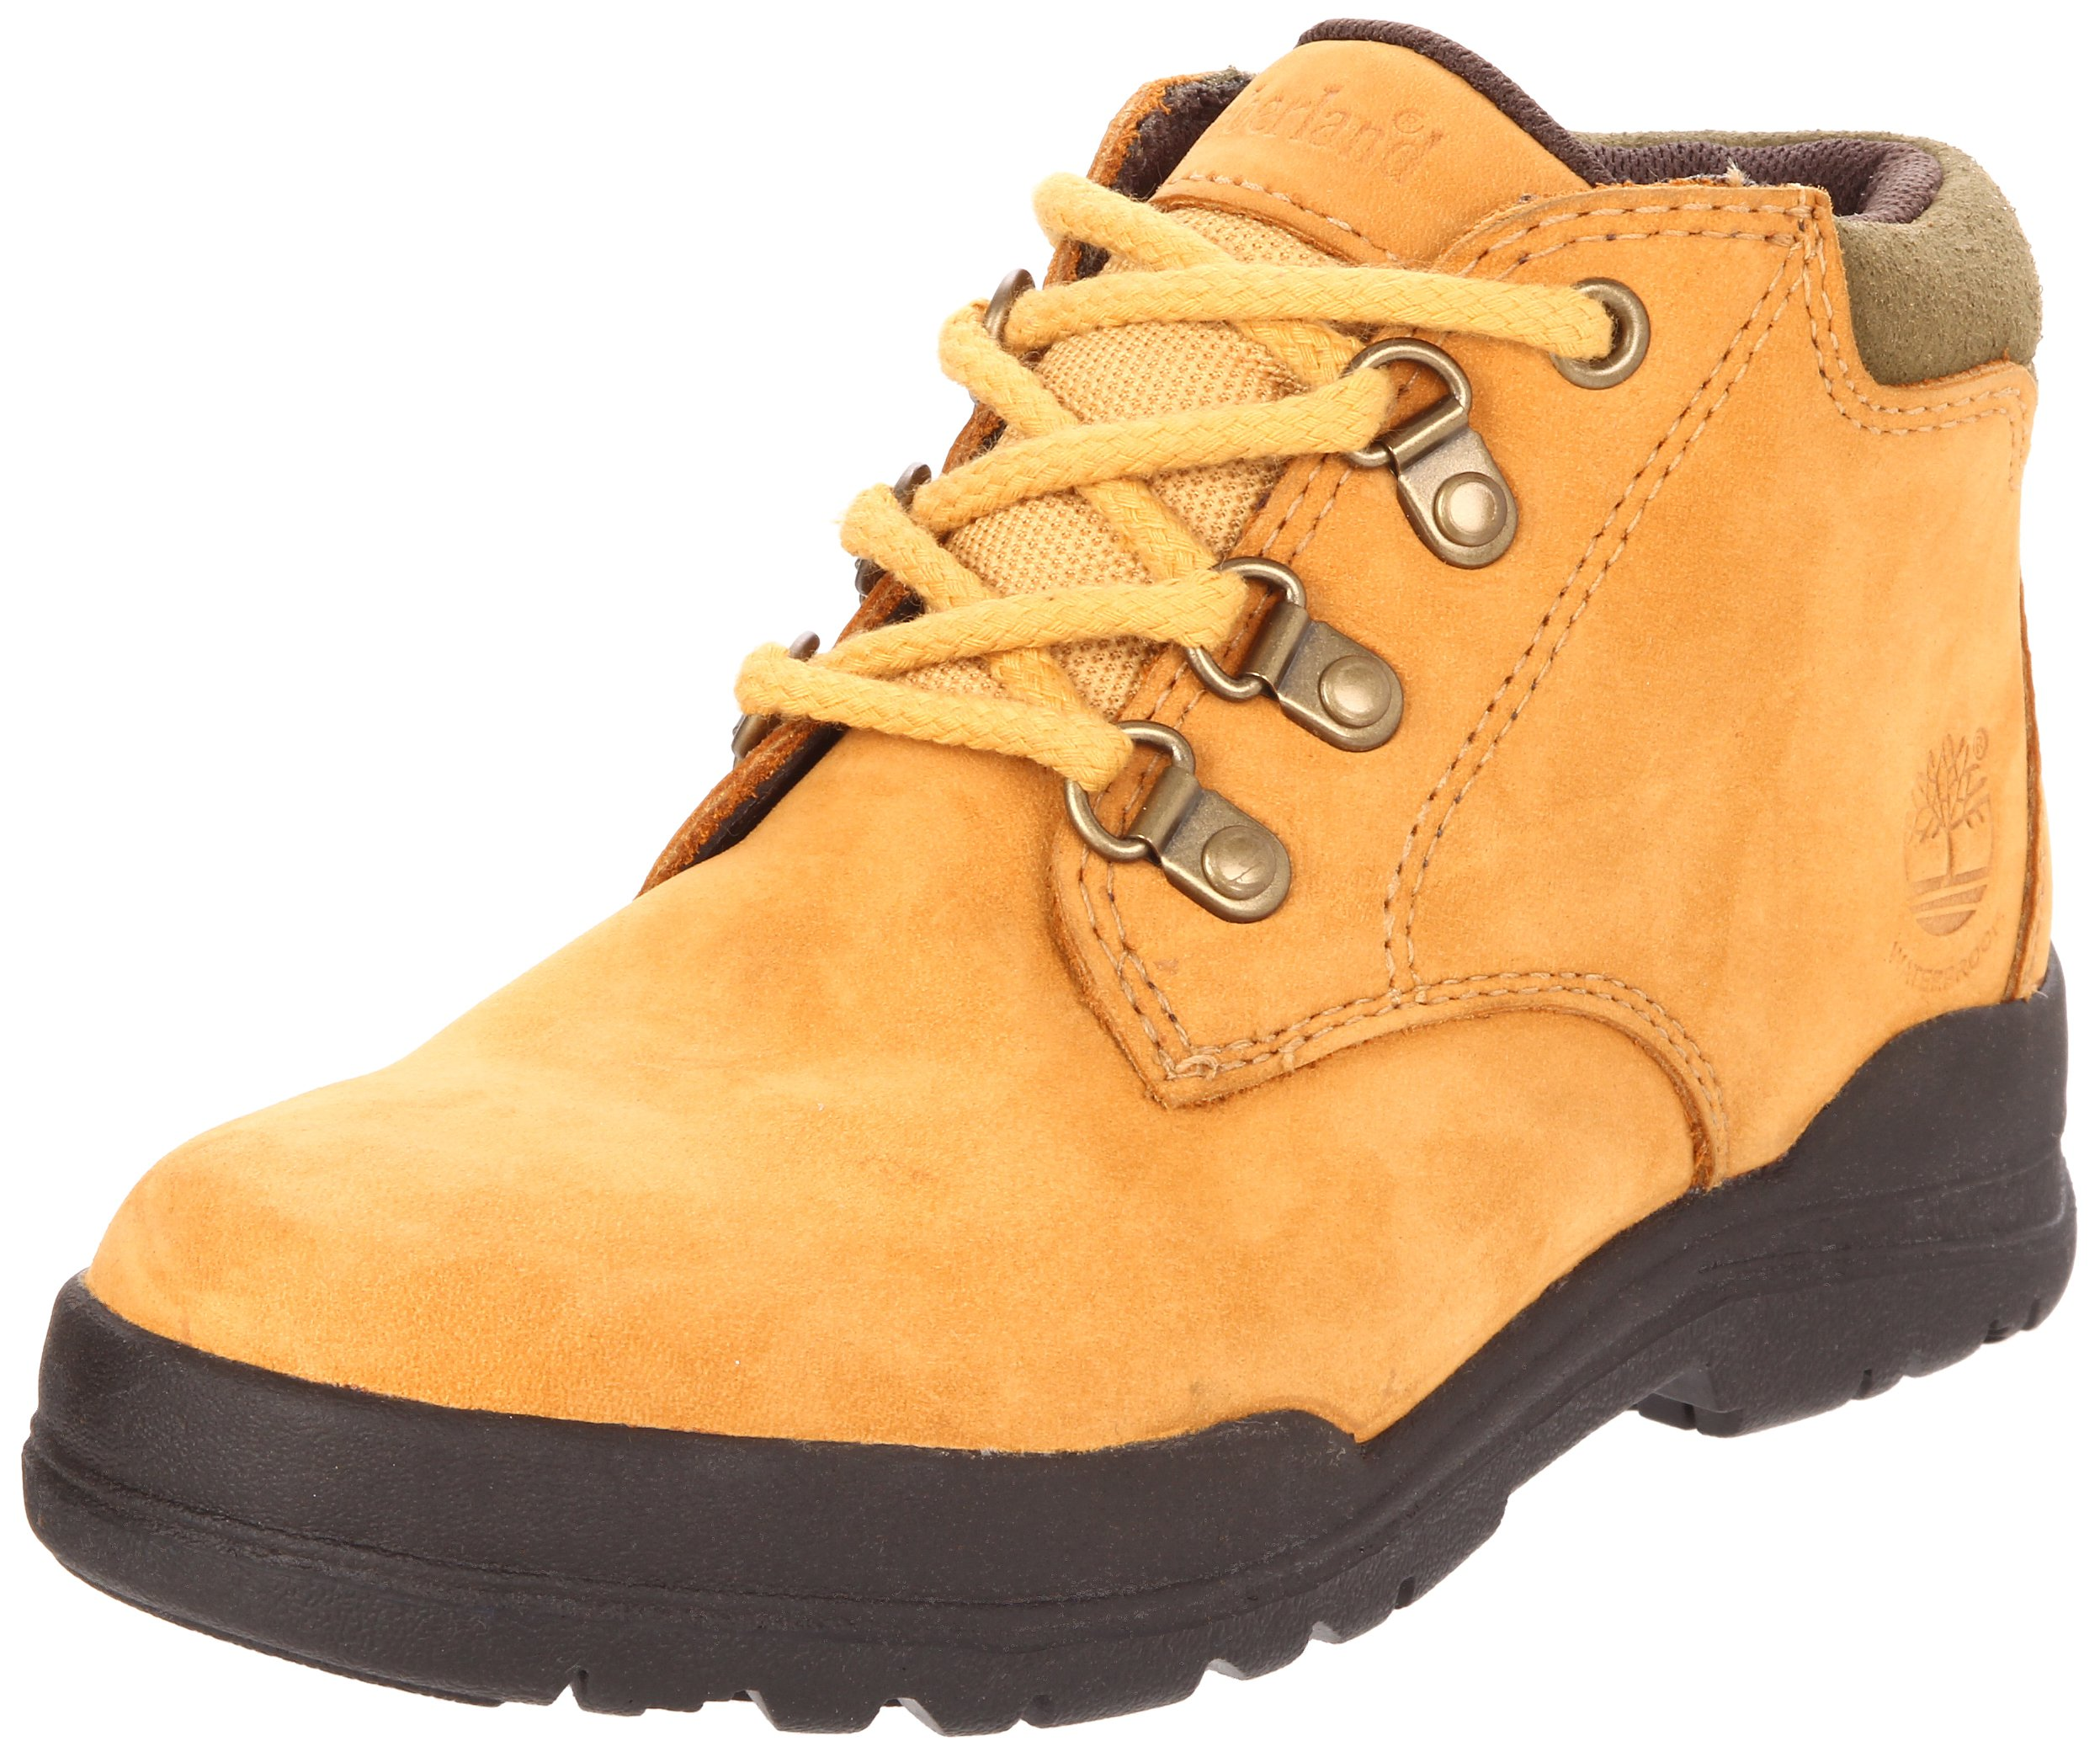 Timberland Plain Toe Bush Boot (Toddler/Little Kid/Big Kid),Wheat,12.5 M US Little KId by Timberland